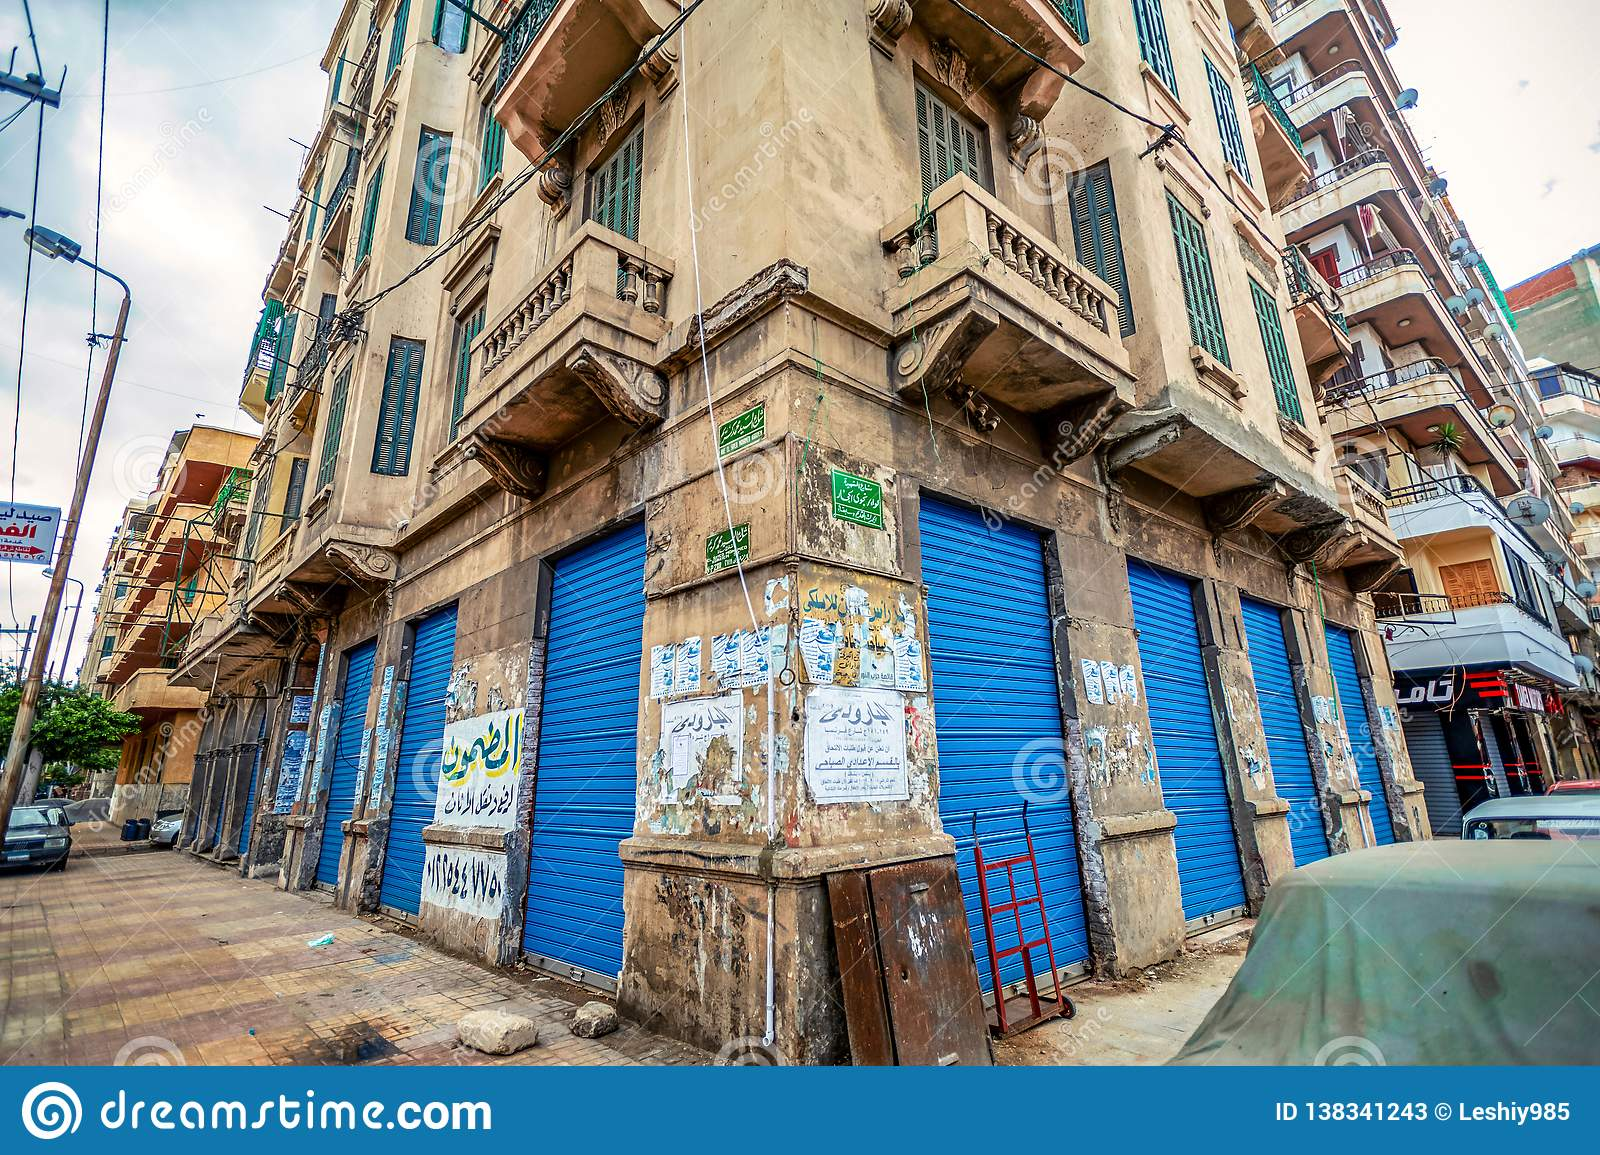 11.16.2018 Alexandria, Egypt, Kind of a corner of an old house with bright and blue doors flooded with old advertisements